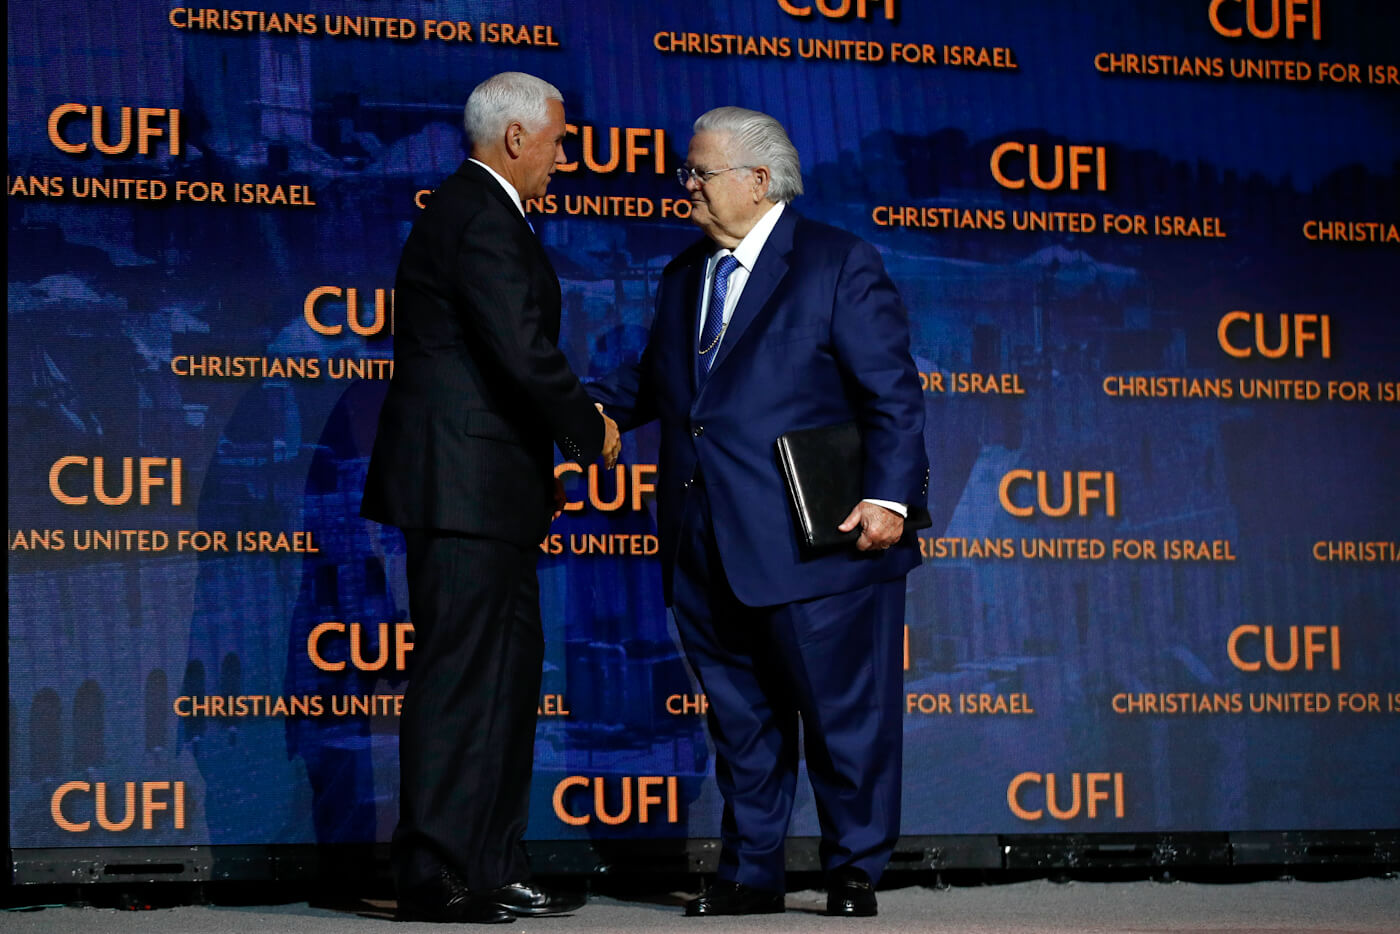 Vice President Pence, left, greets Hagee at CUFI's annual summit, July 8, 2019, in Washington. Patrick Semansky | AP